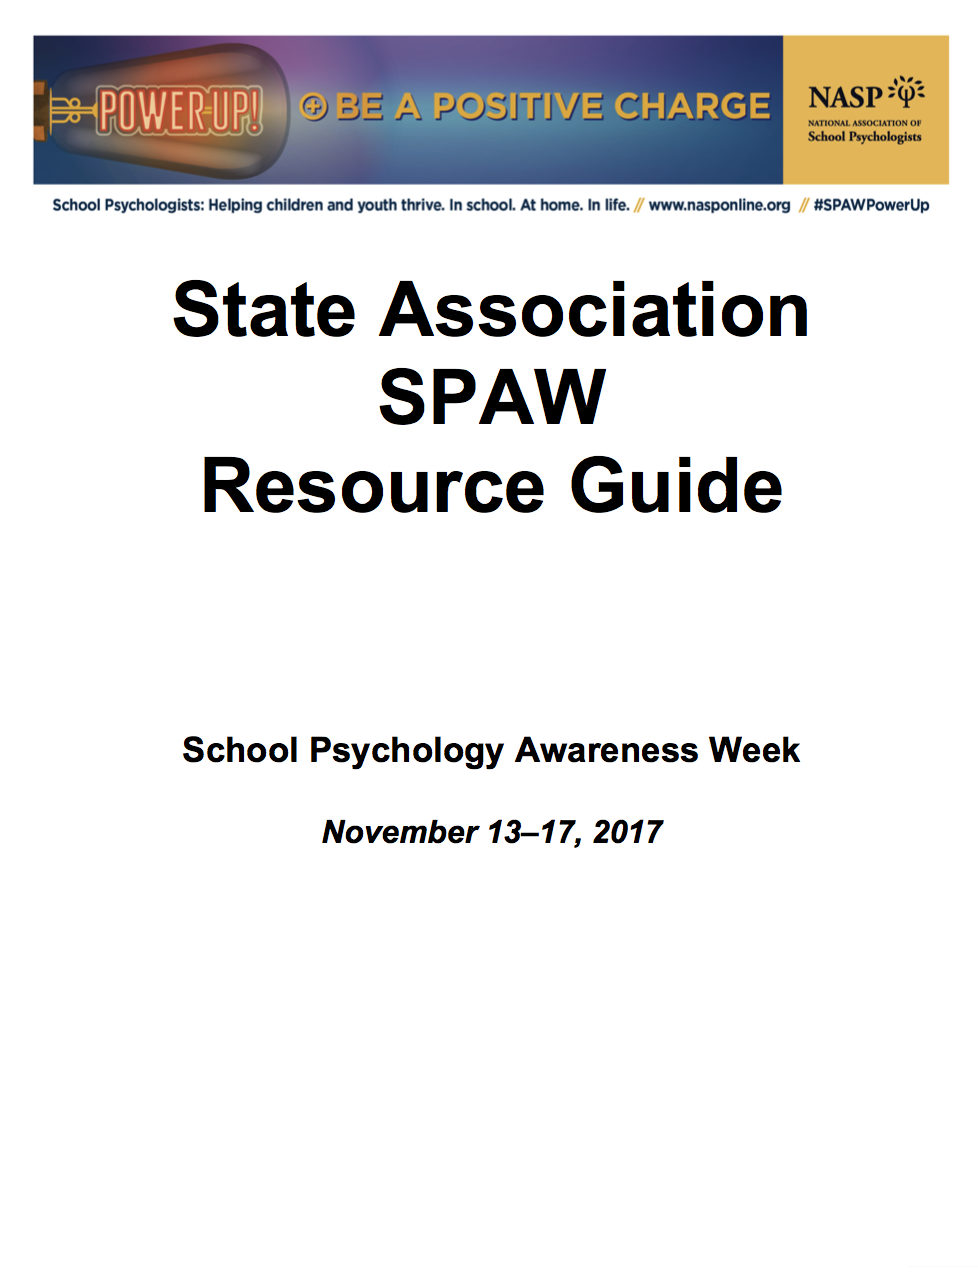 SPAW 2017 State Association Resource Guide